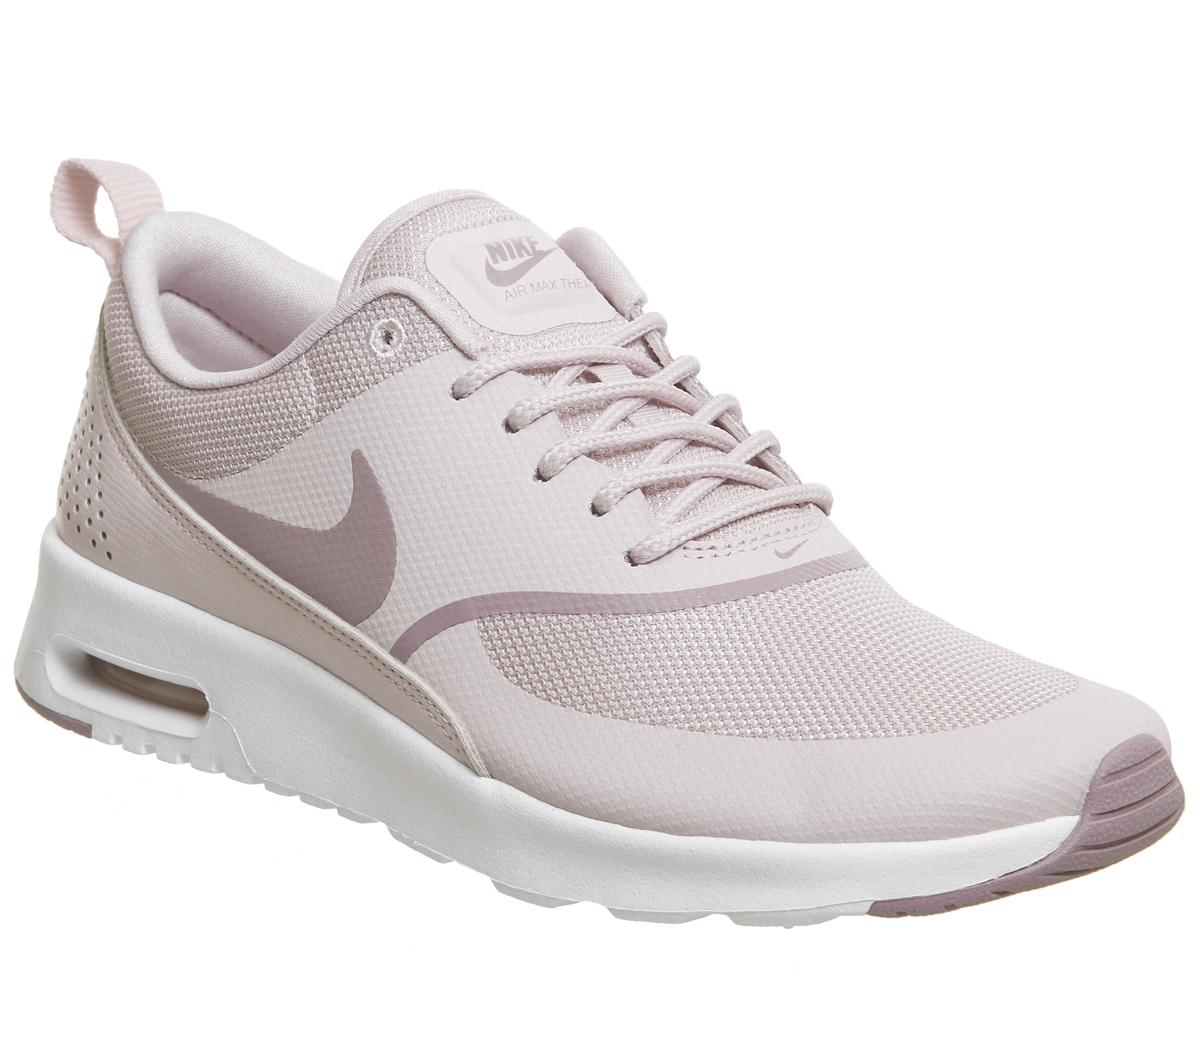 La ciudad Lima Relación  Nike Air Max Thea Barely Rose Elemental Rose White - Hers trainers